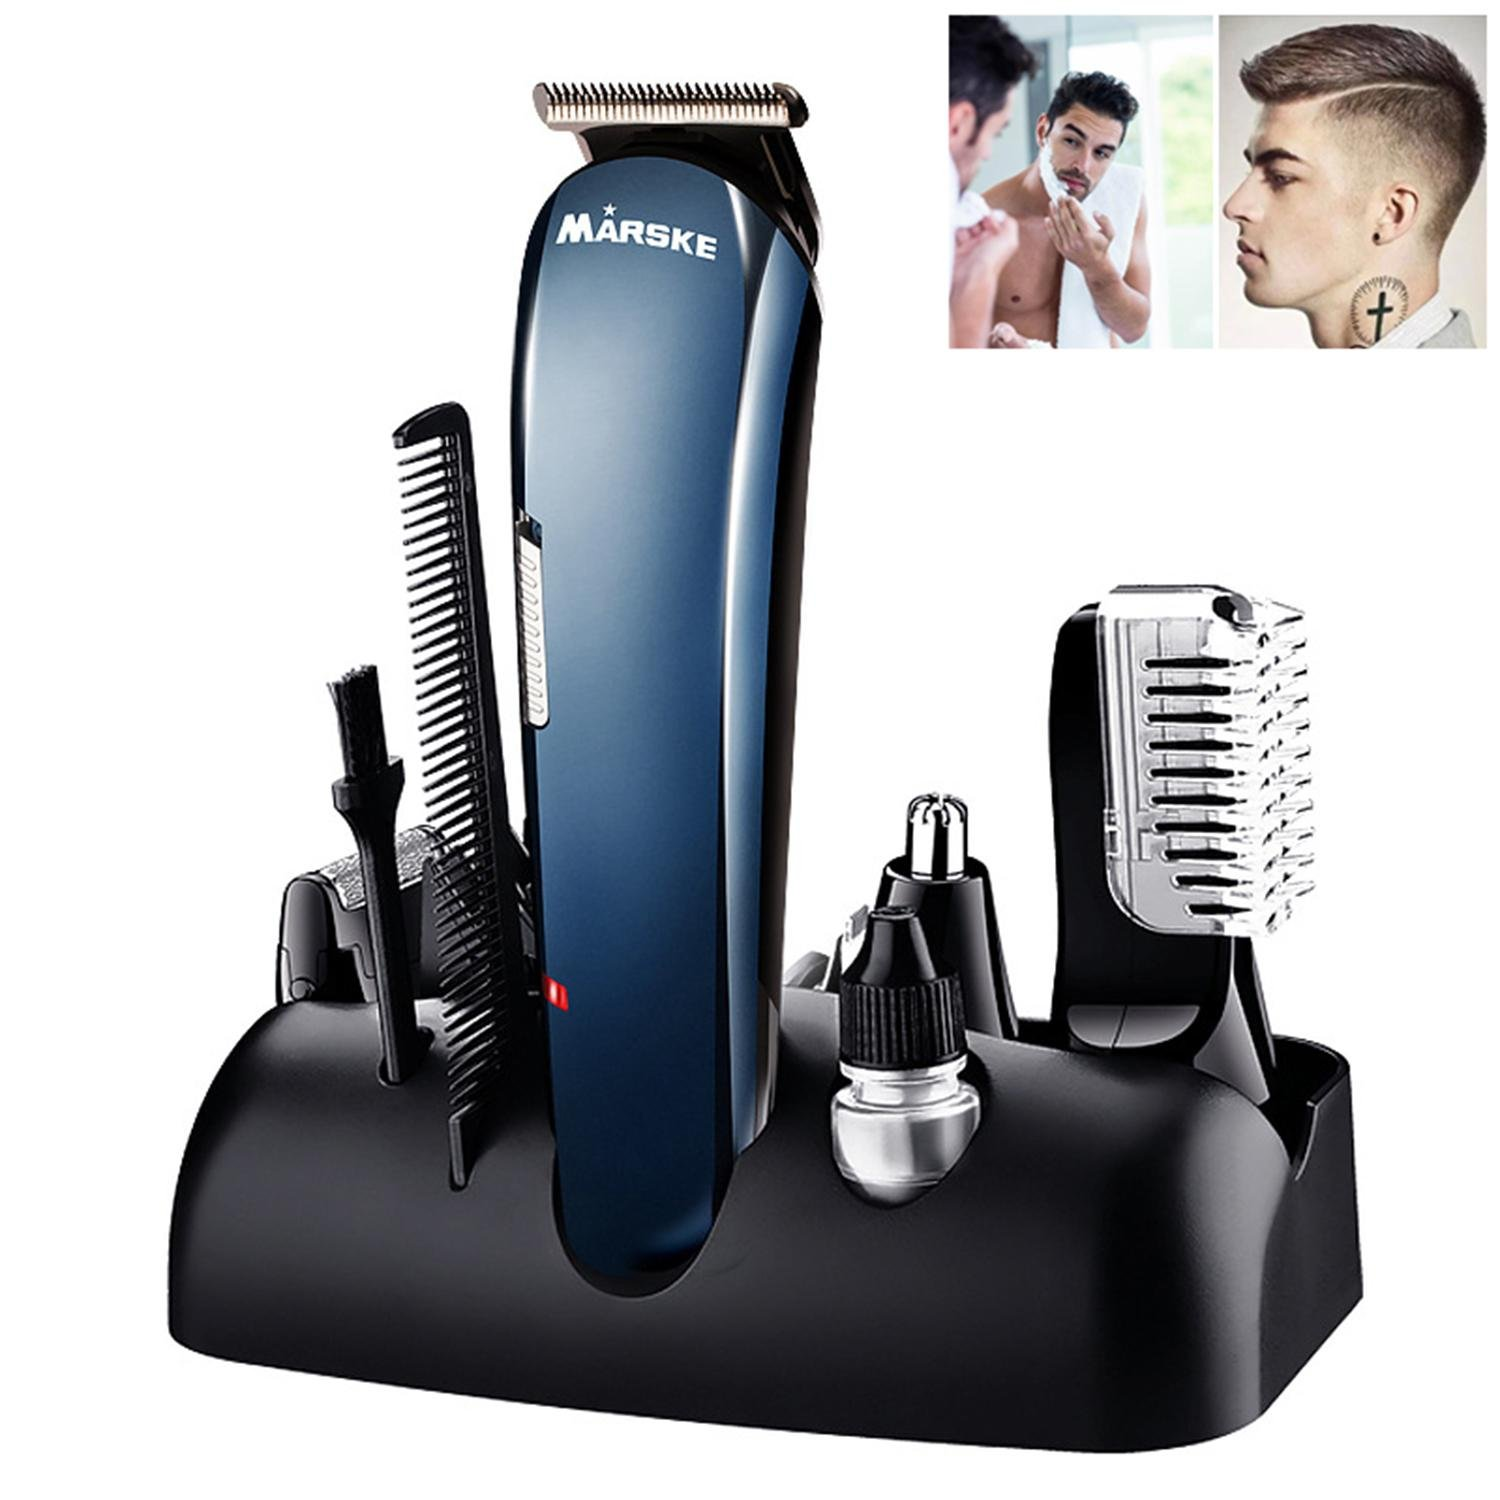 Beard Trimmer, Aolvo 5 in 1 Rechargeable Electric Multifunction Hair Beard Nose Ear Eyebrow Shaver for Men , Skin-friendly Fast Charging Long Lasting Precision Shaper and Clipper - US Plug